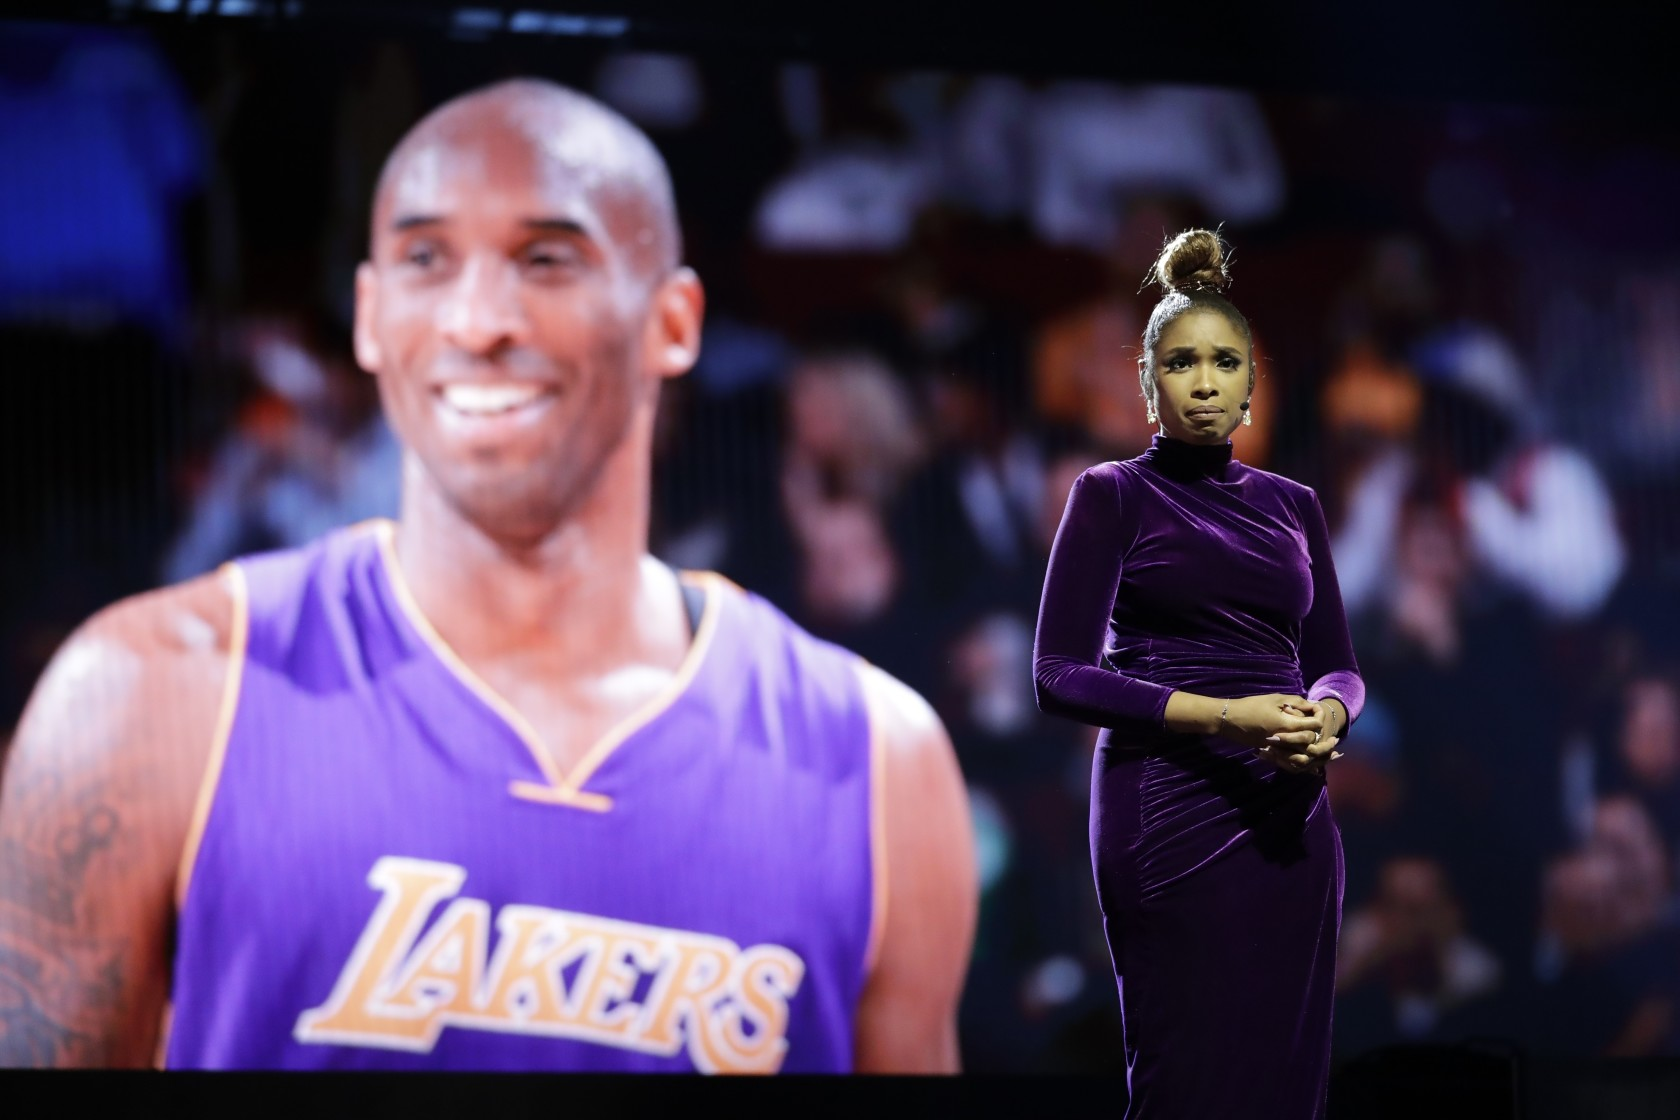 Jennifer Hudson and More Pay Tribute to Kobe Bryant at NBA All-Star Game